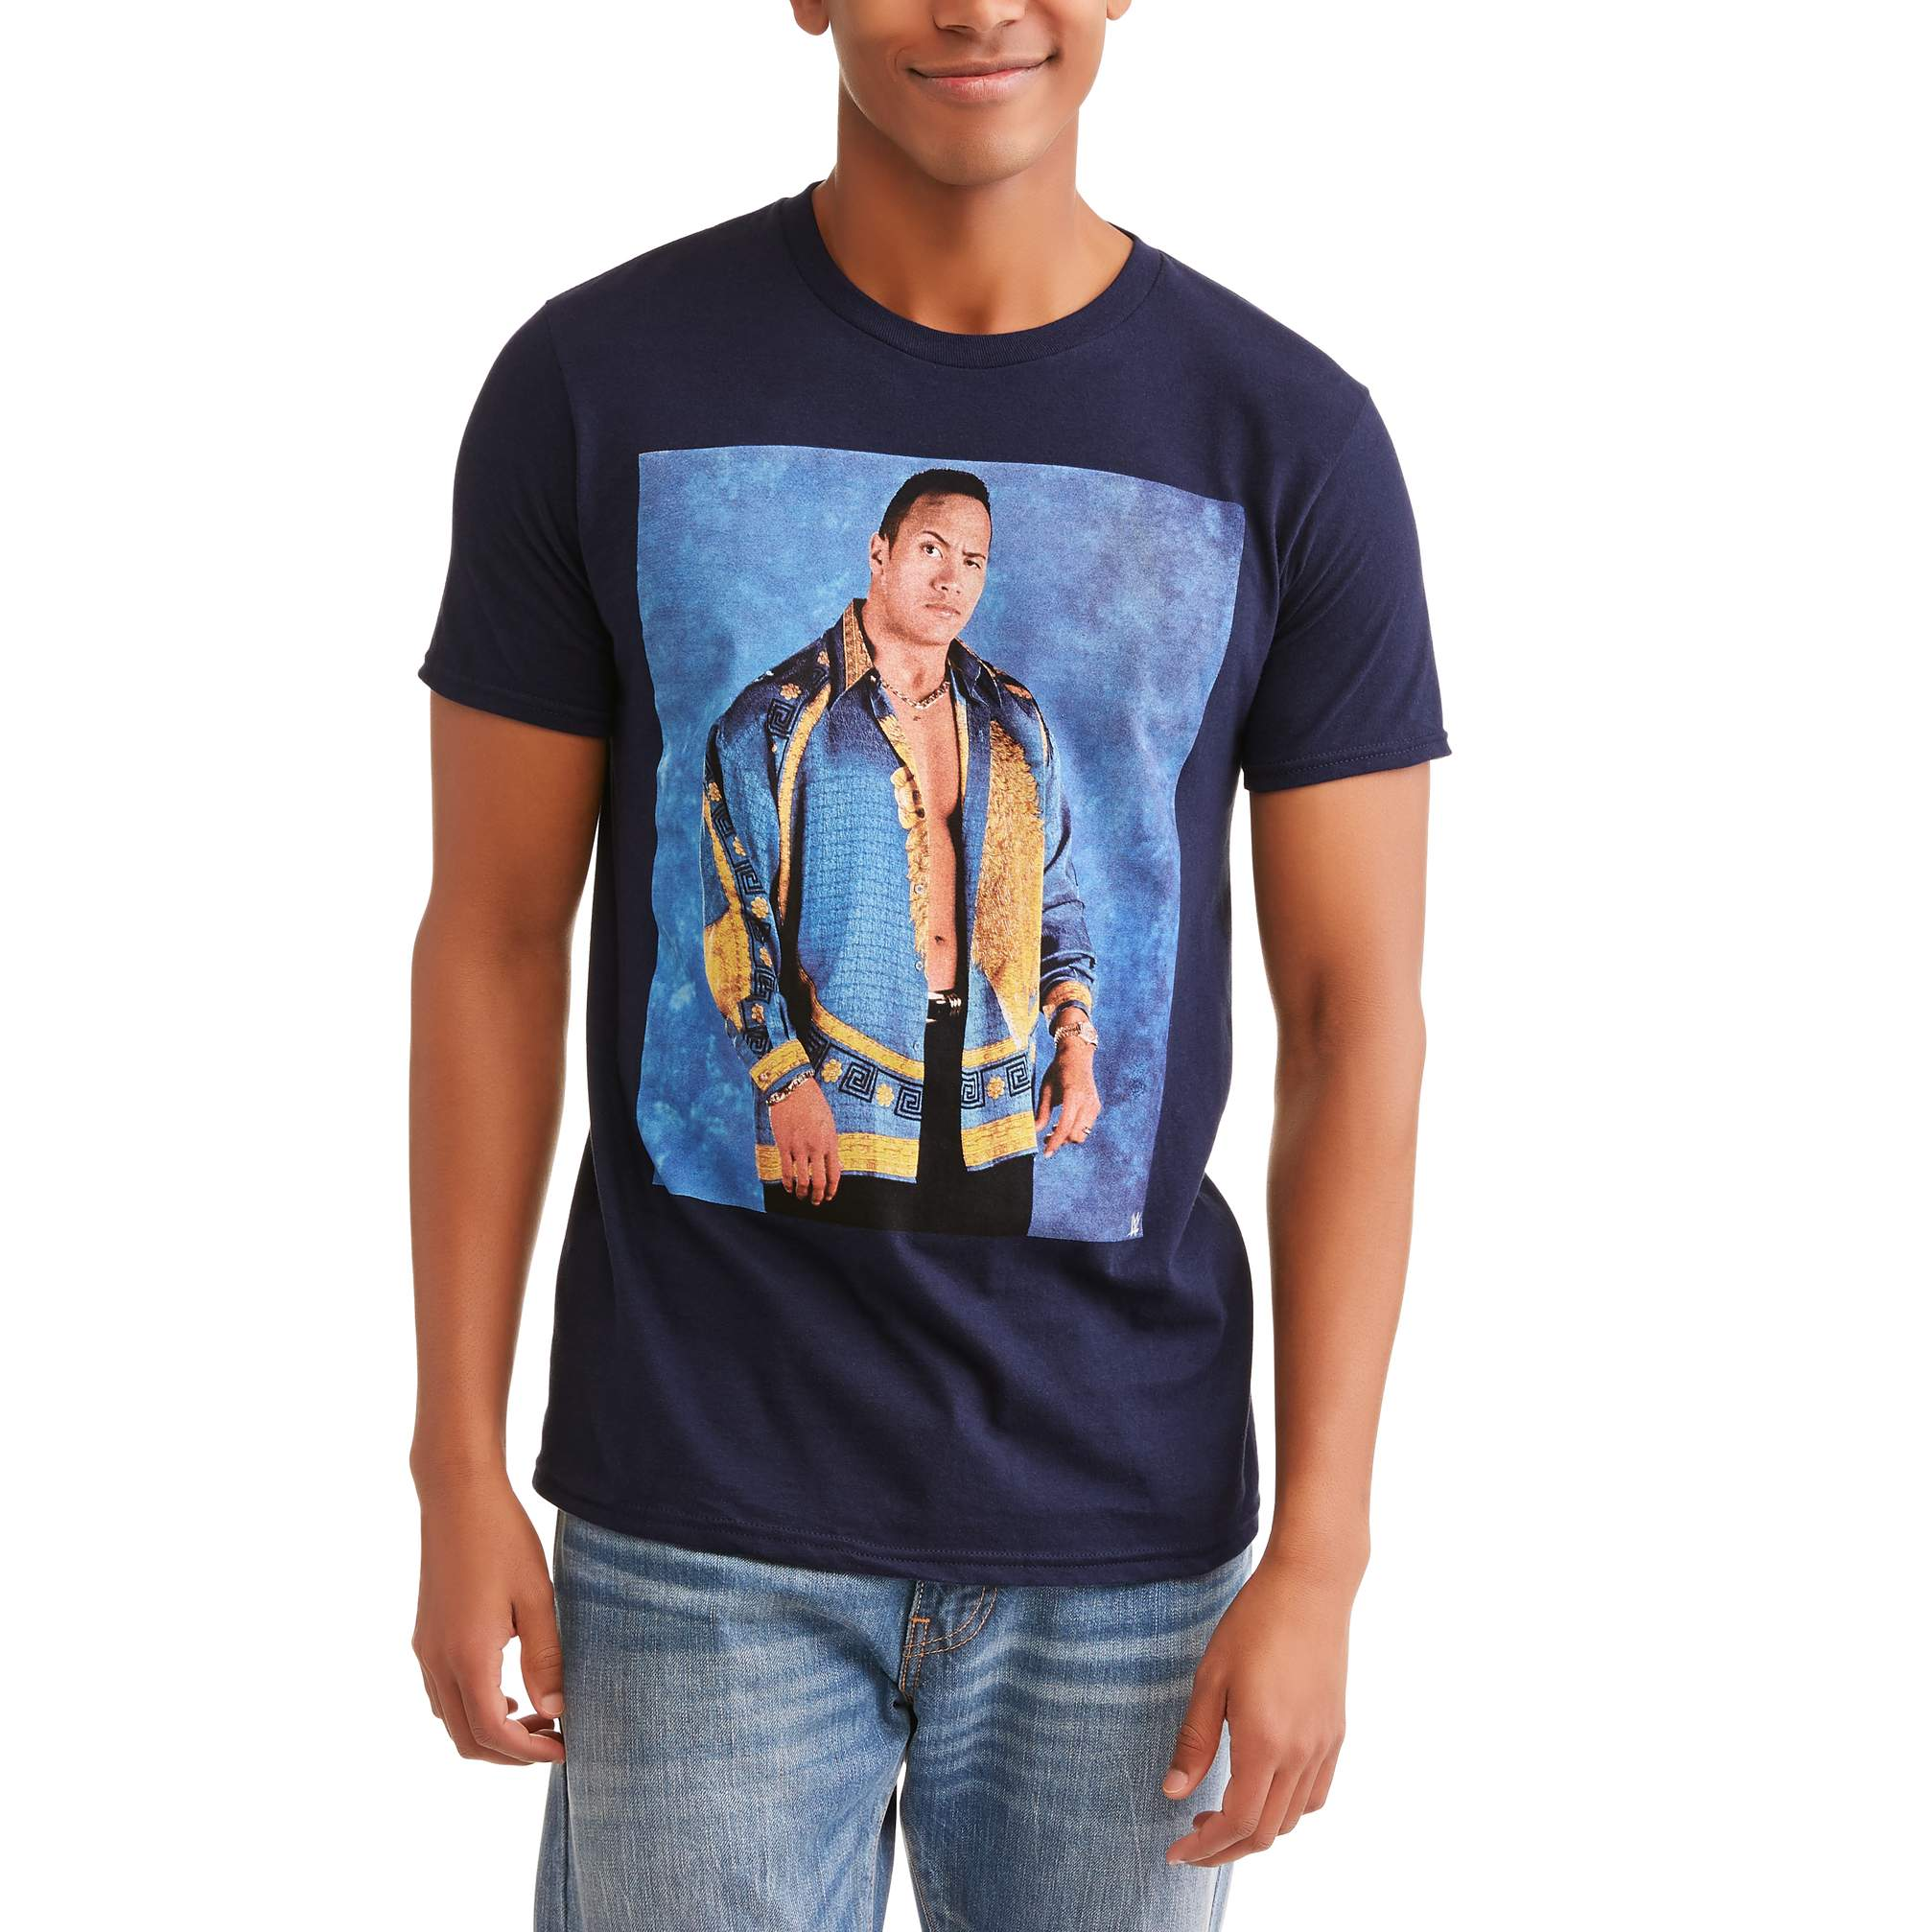 WWE Men's The Rock on Blue Background Short Sleeve Graphic T-Shirt